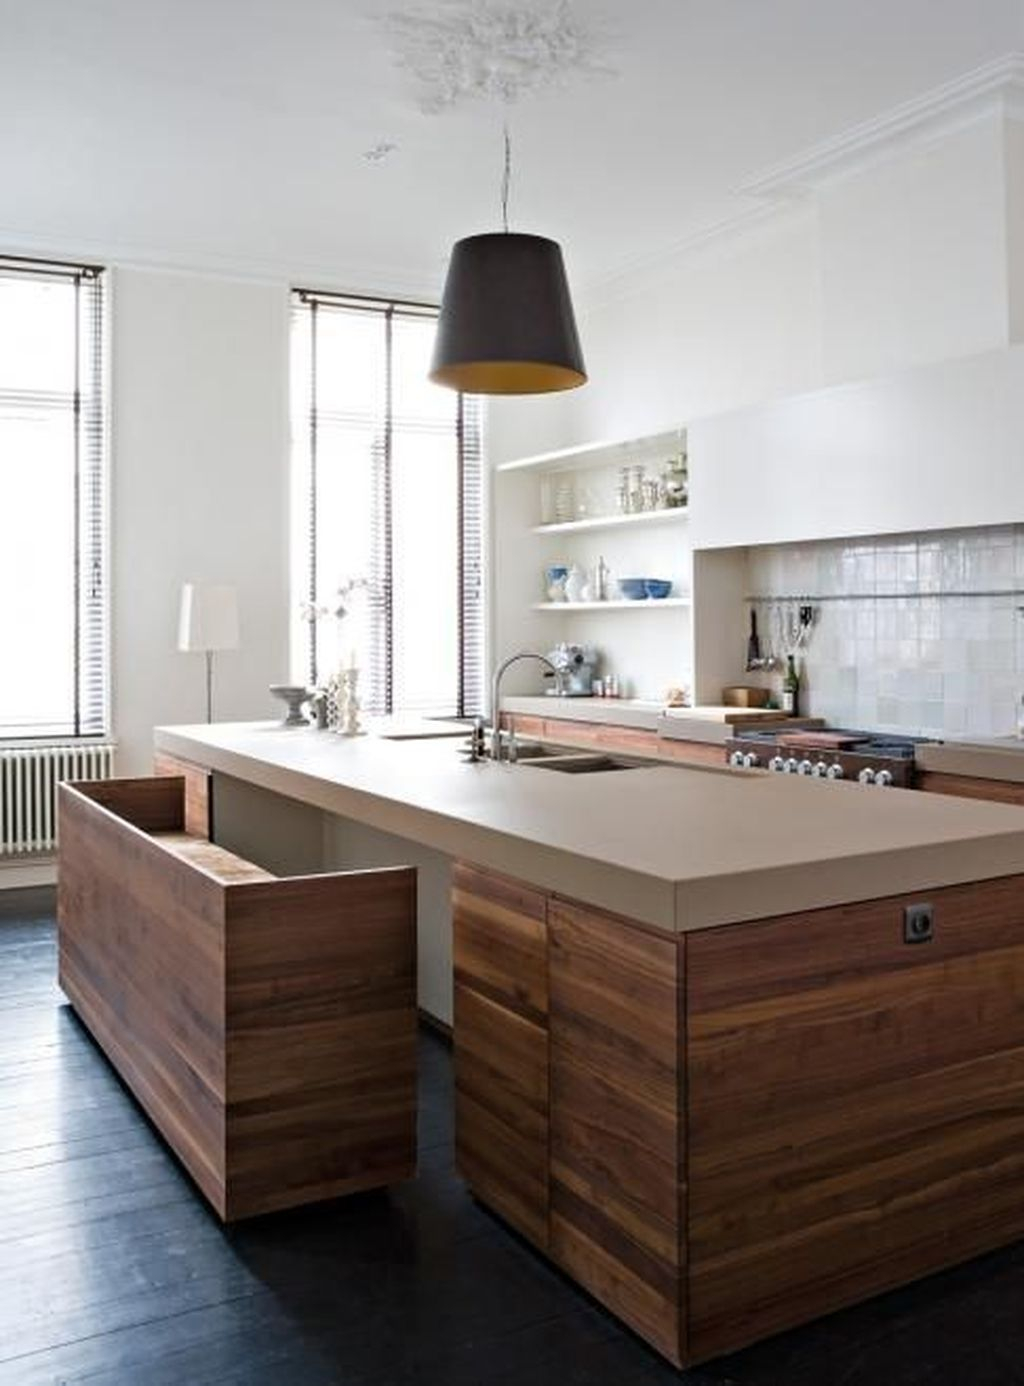 Superb Kitchen Design Ideas That You Can Try 13